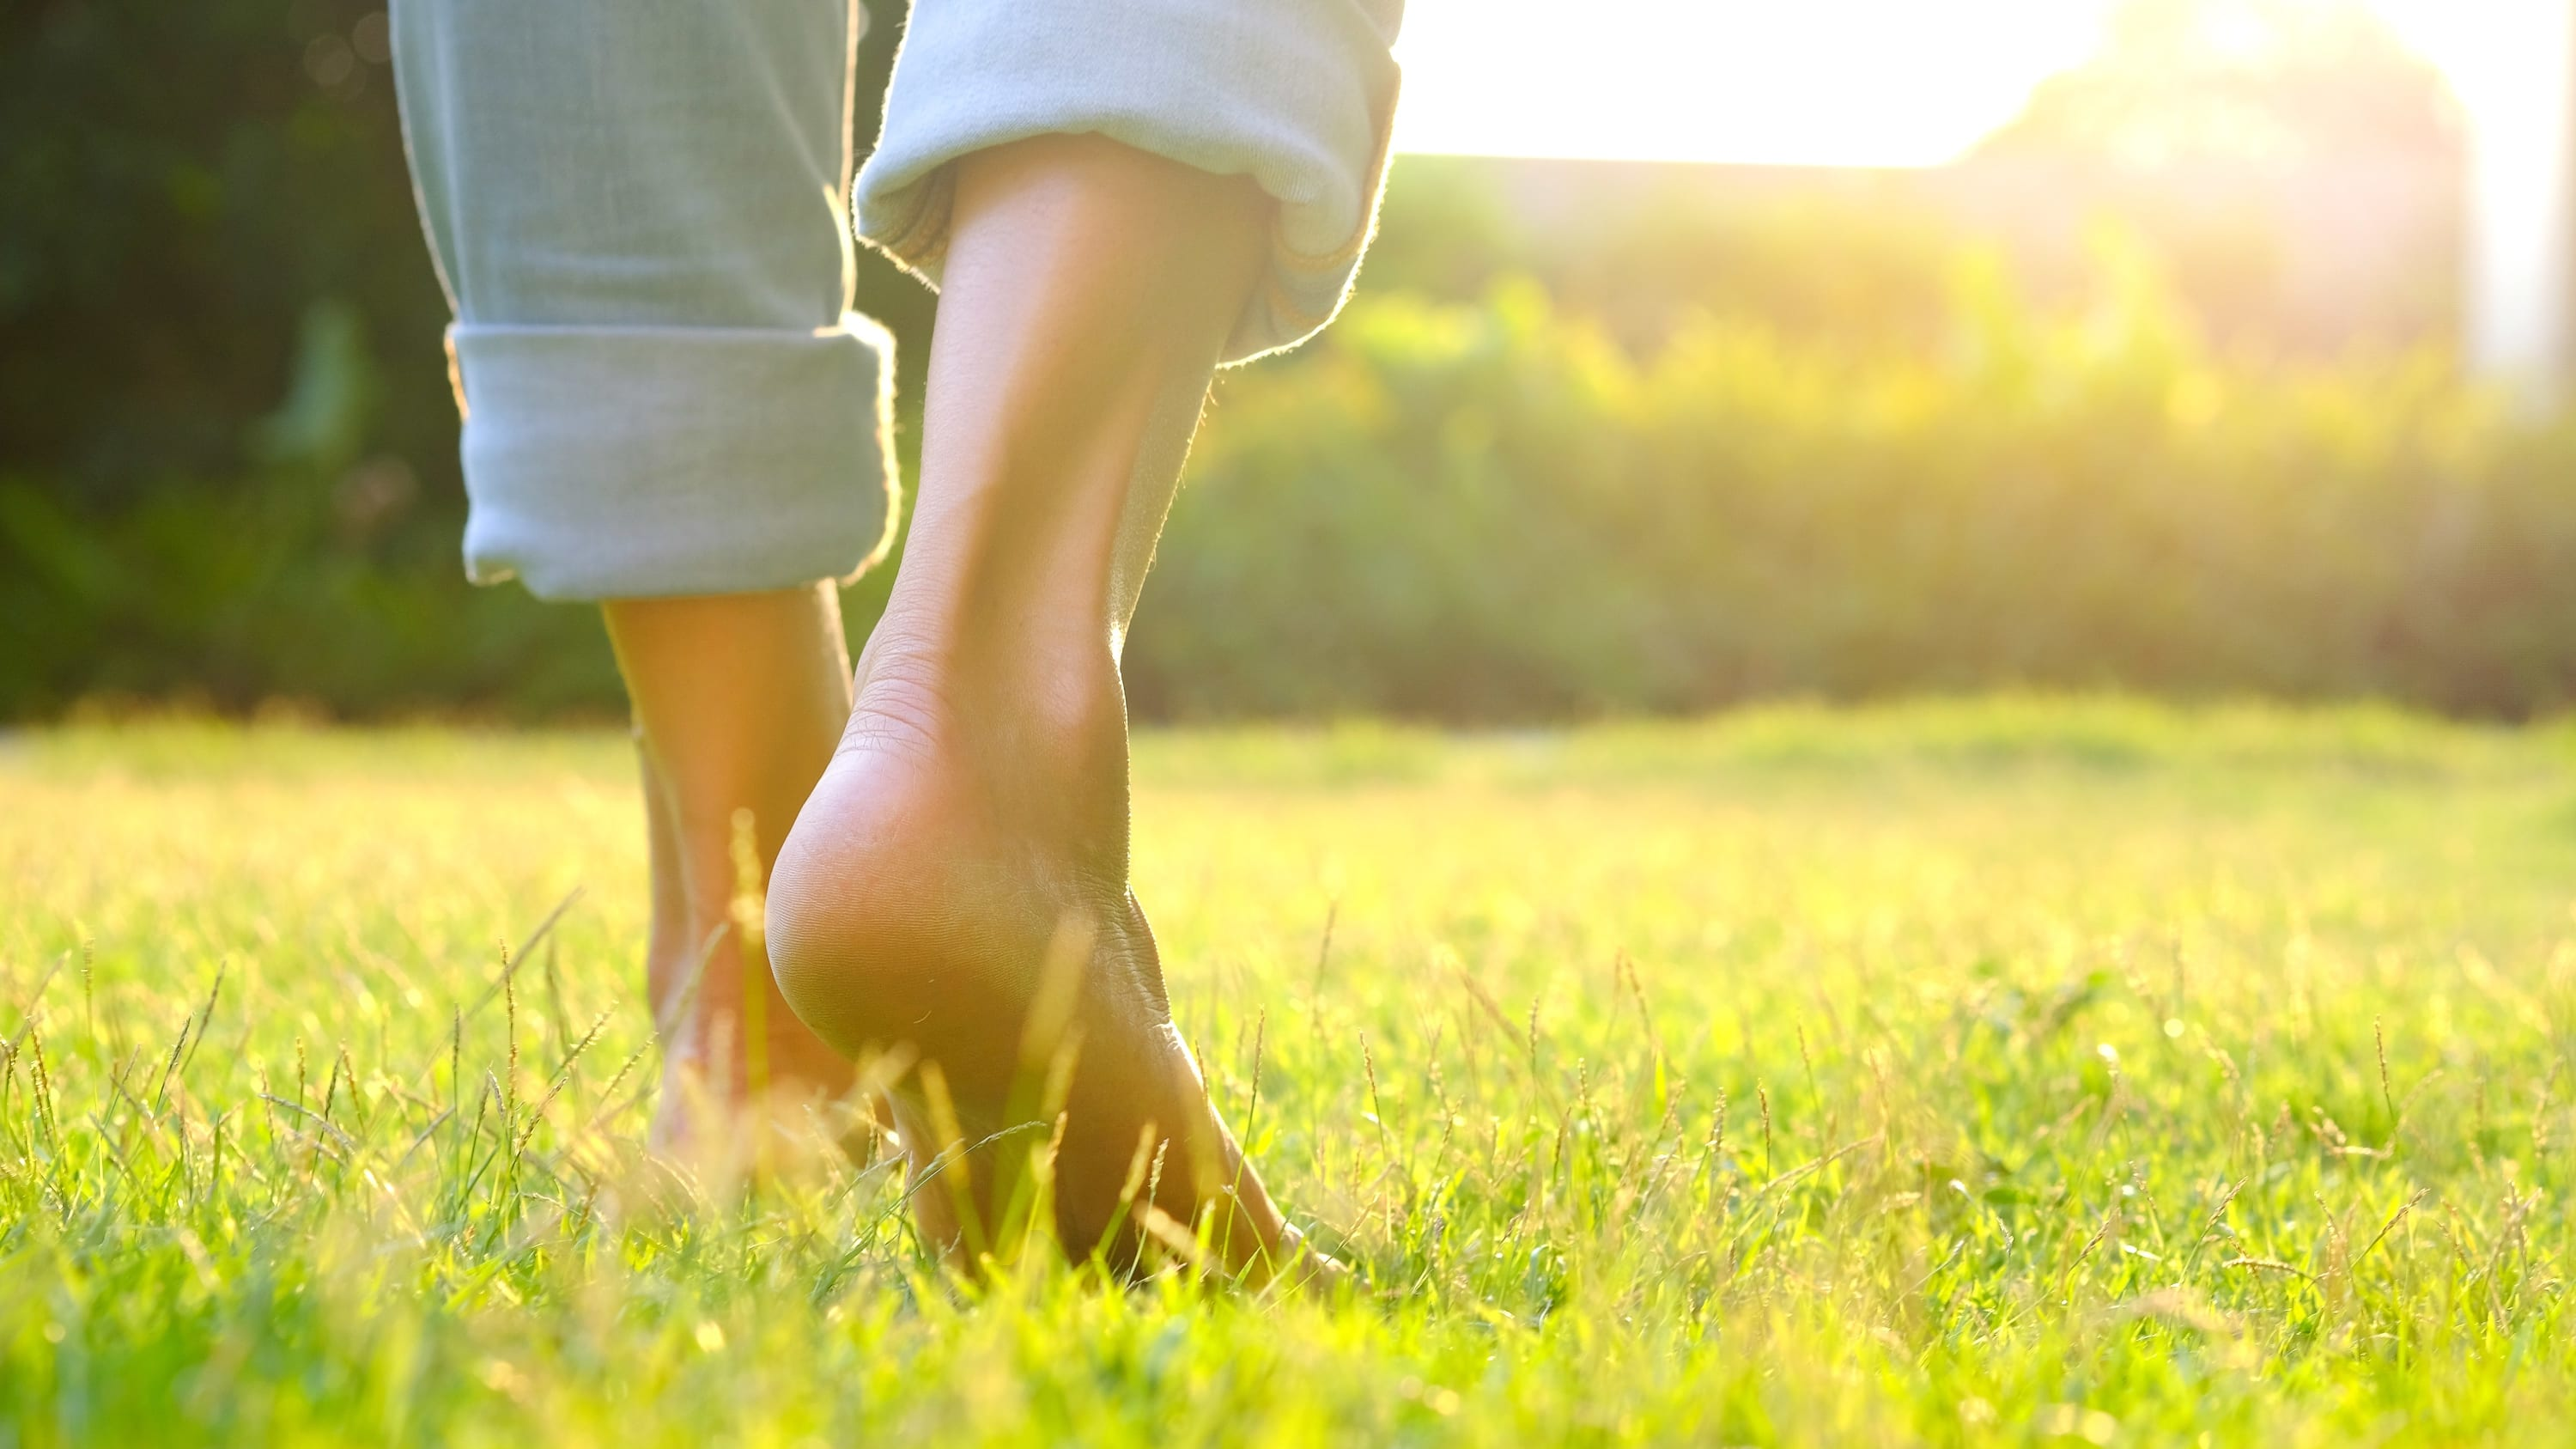 woman walking in grass after recovering from COVID-19